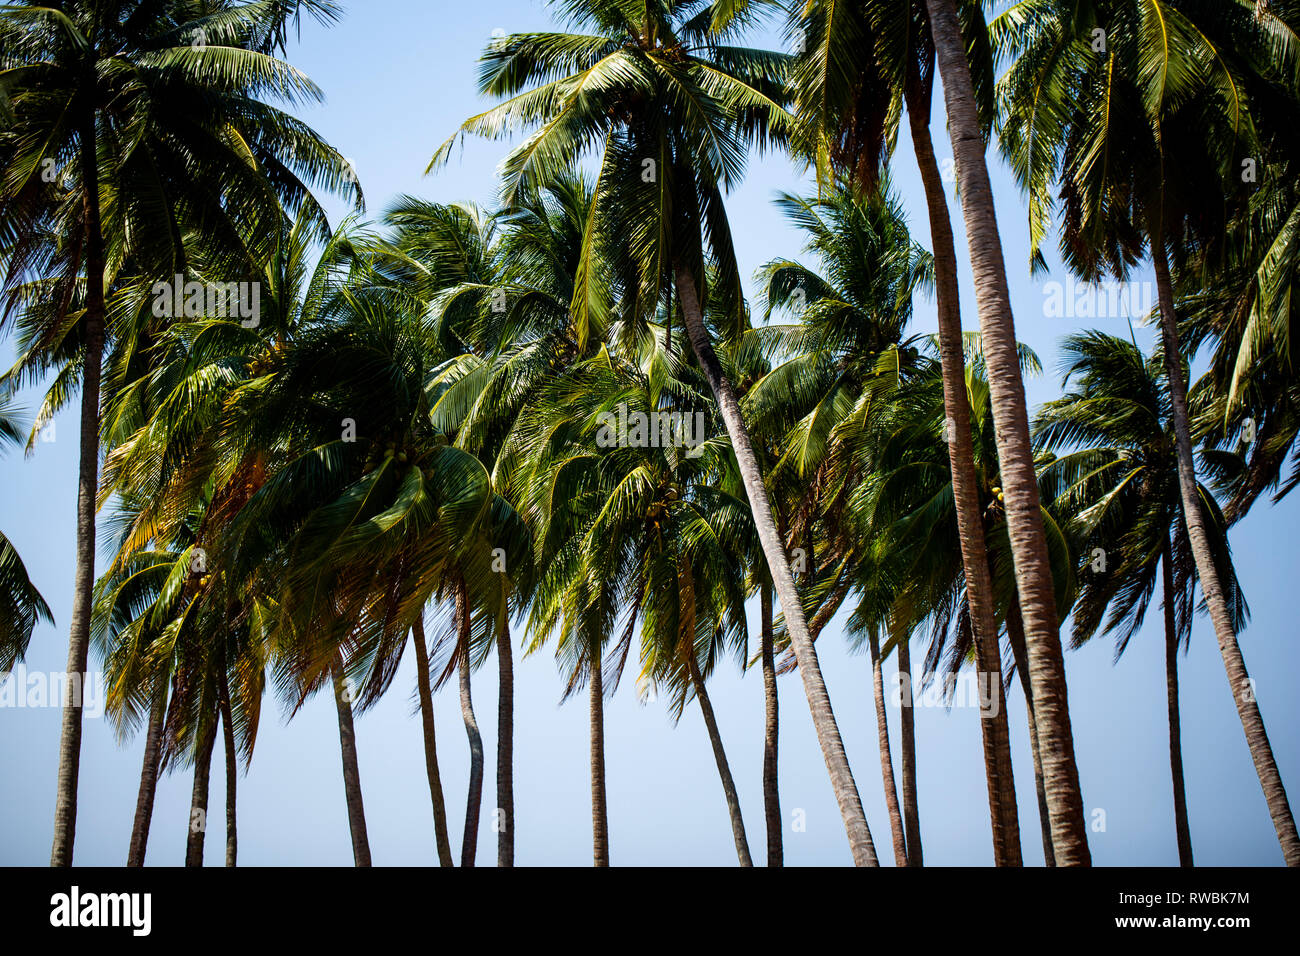 Coconut trees swaying in the wind on Ross Island part of the Andaman and Nicobar Islands of India - Stock Image